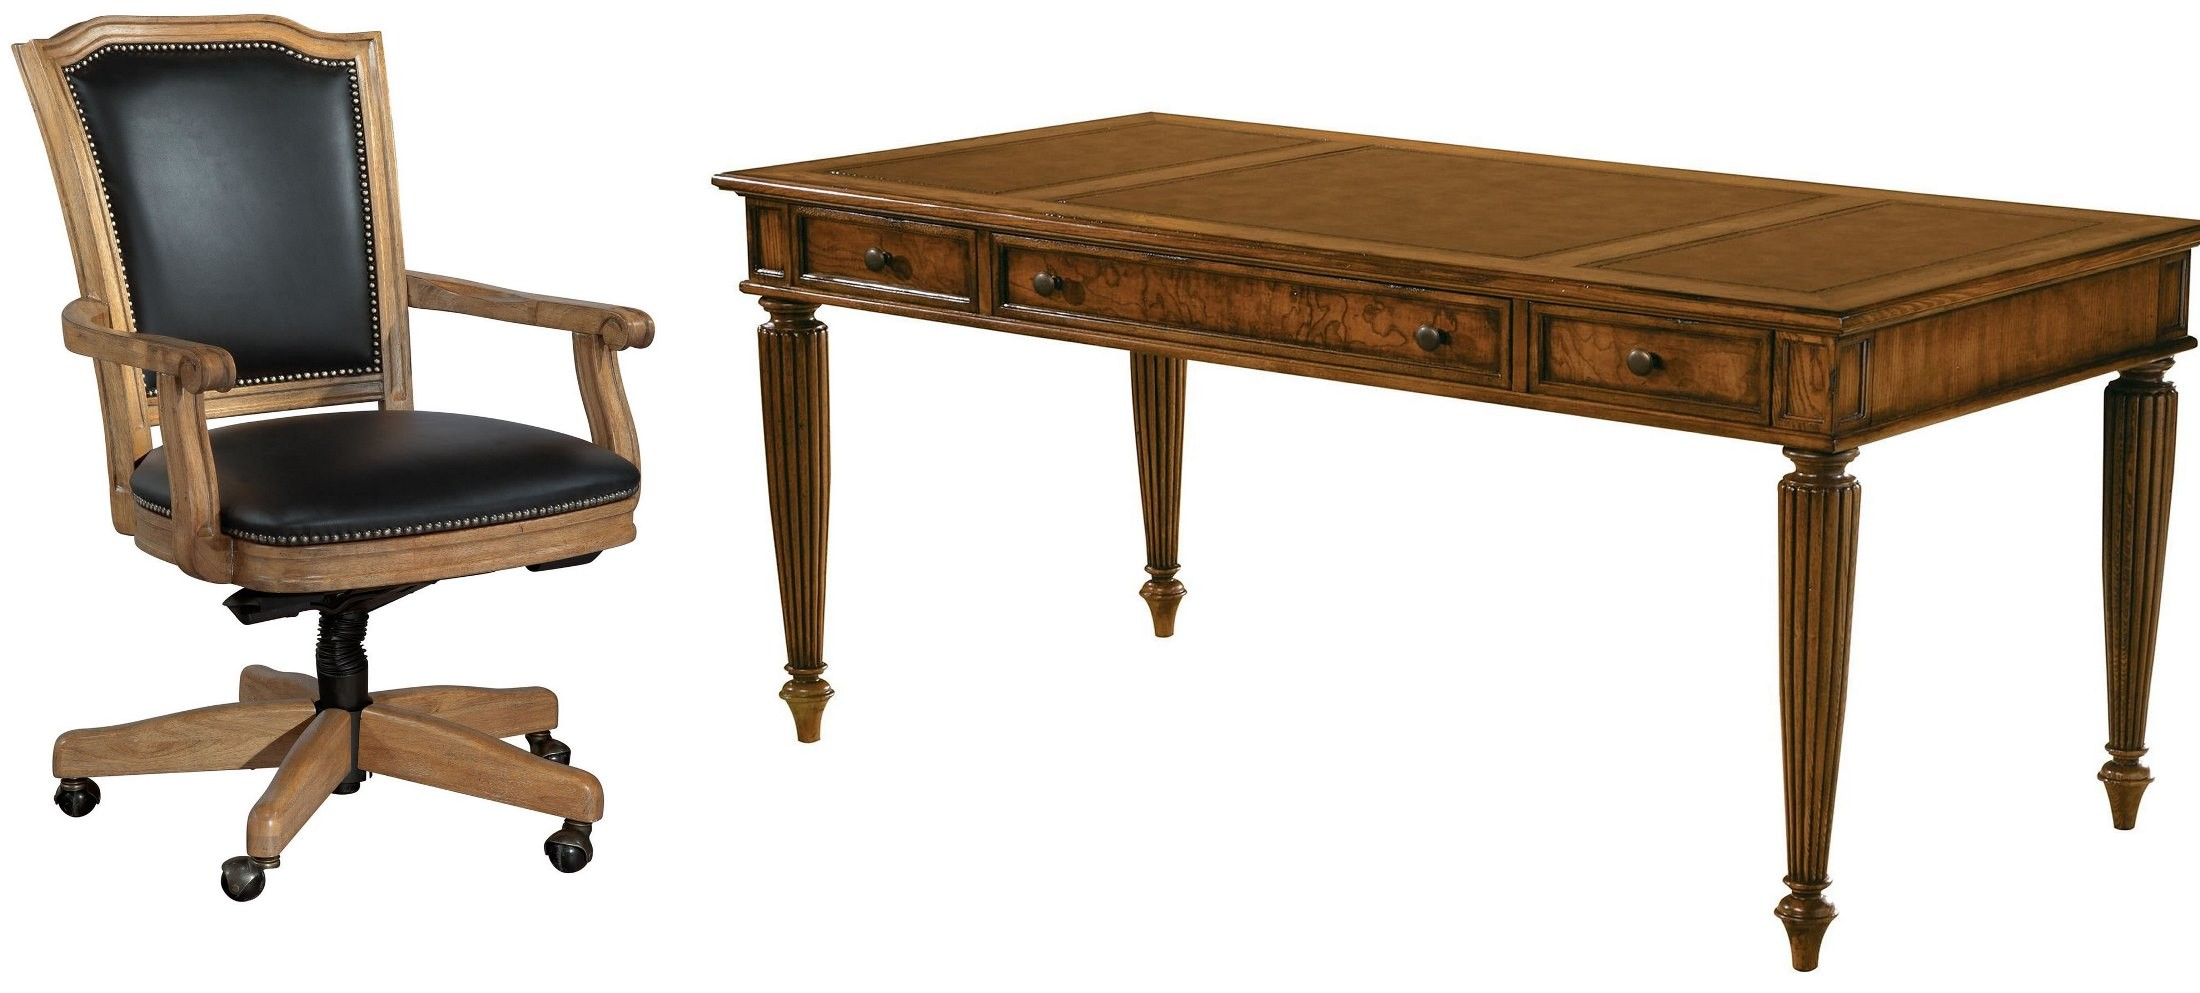 Urban Ash Burl Table Desk Home Office Set From Hekman